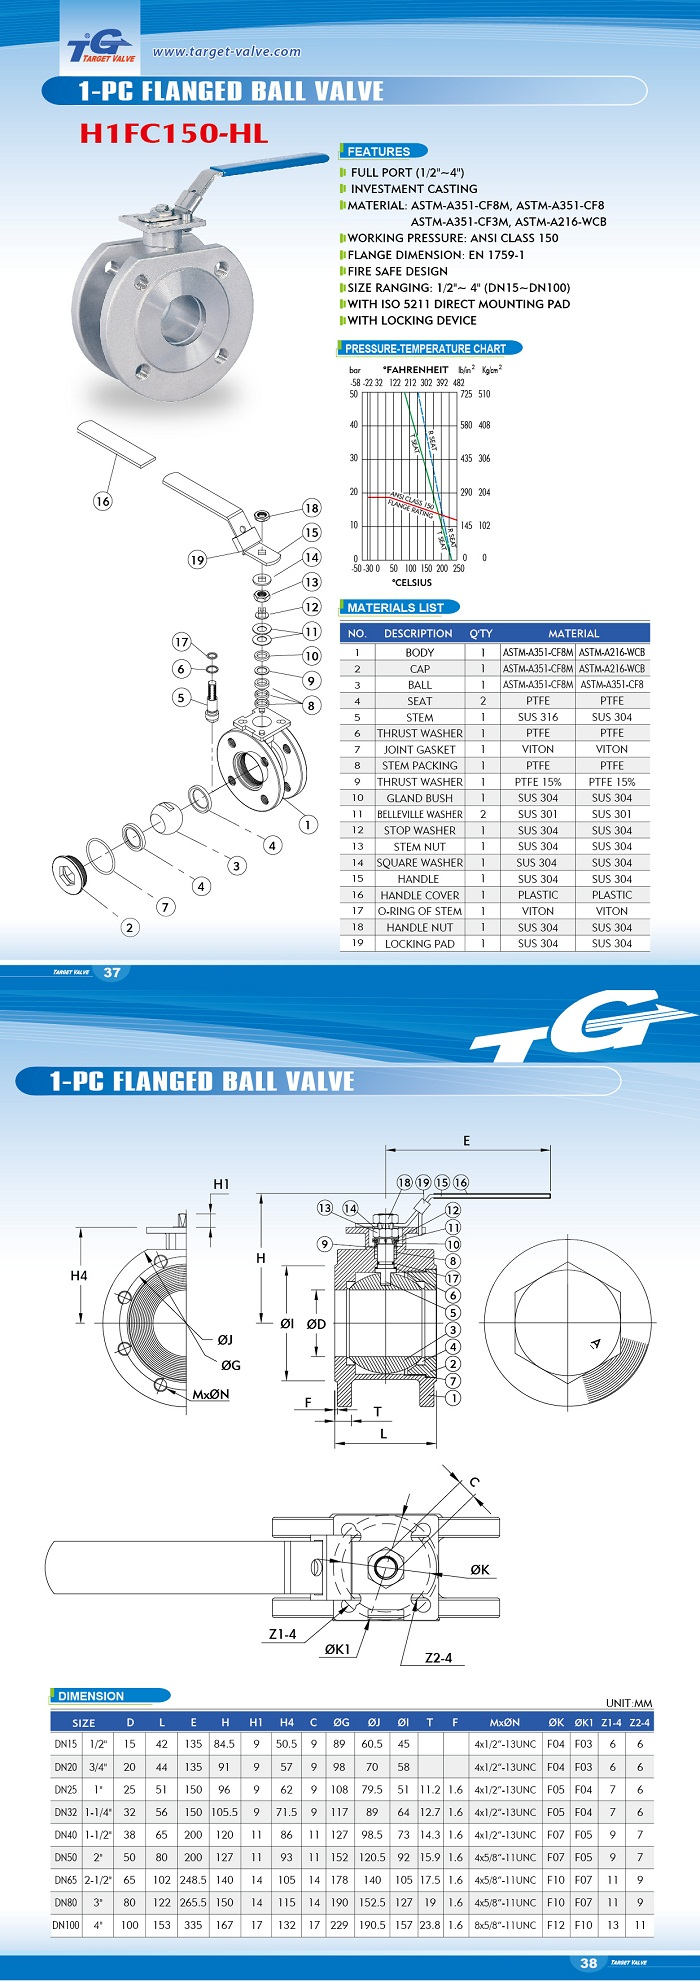 1 PC FLANGED BALL VALVE - H1FC150